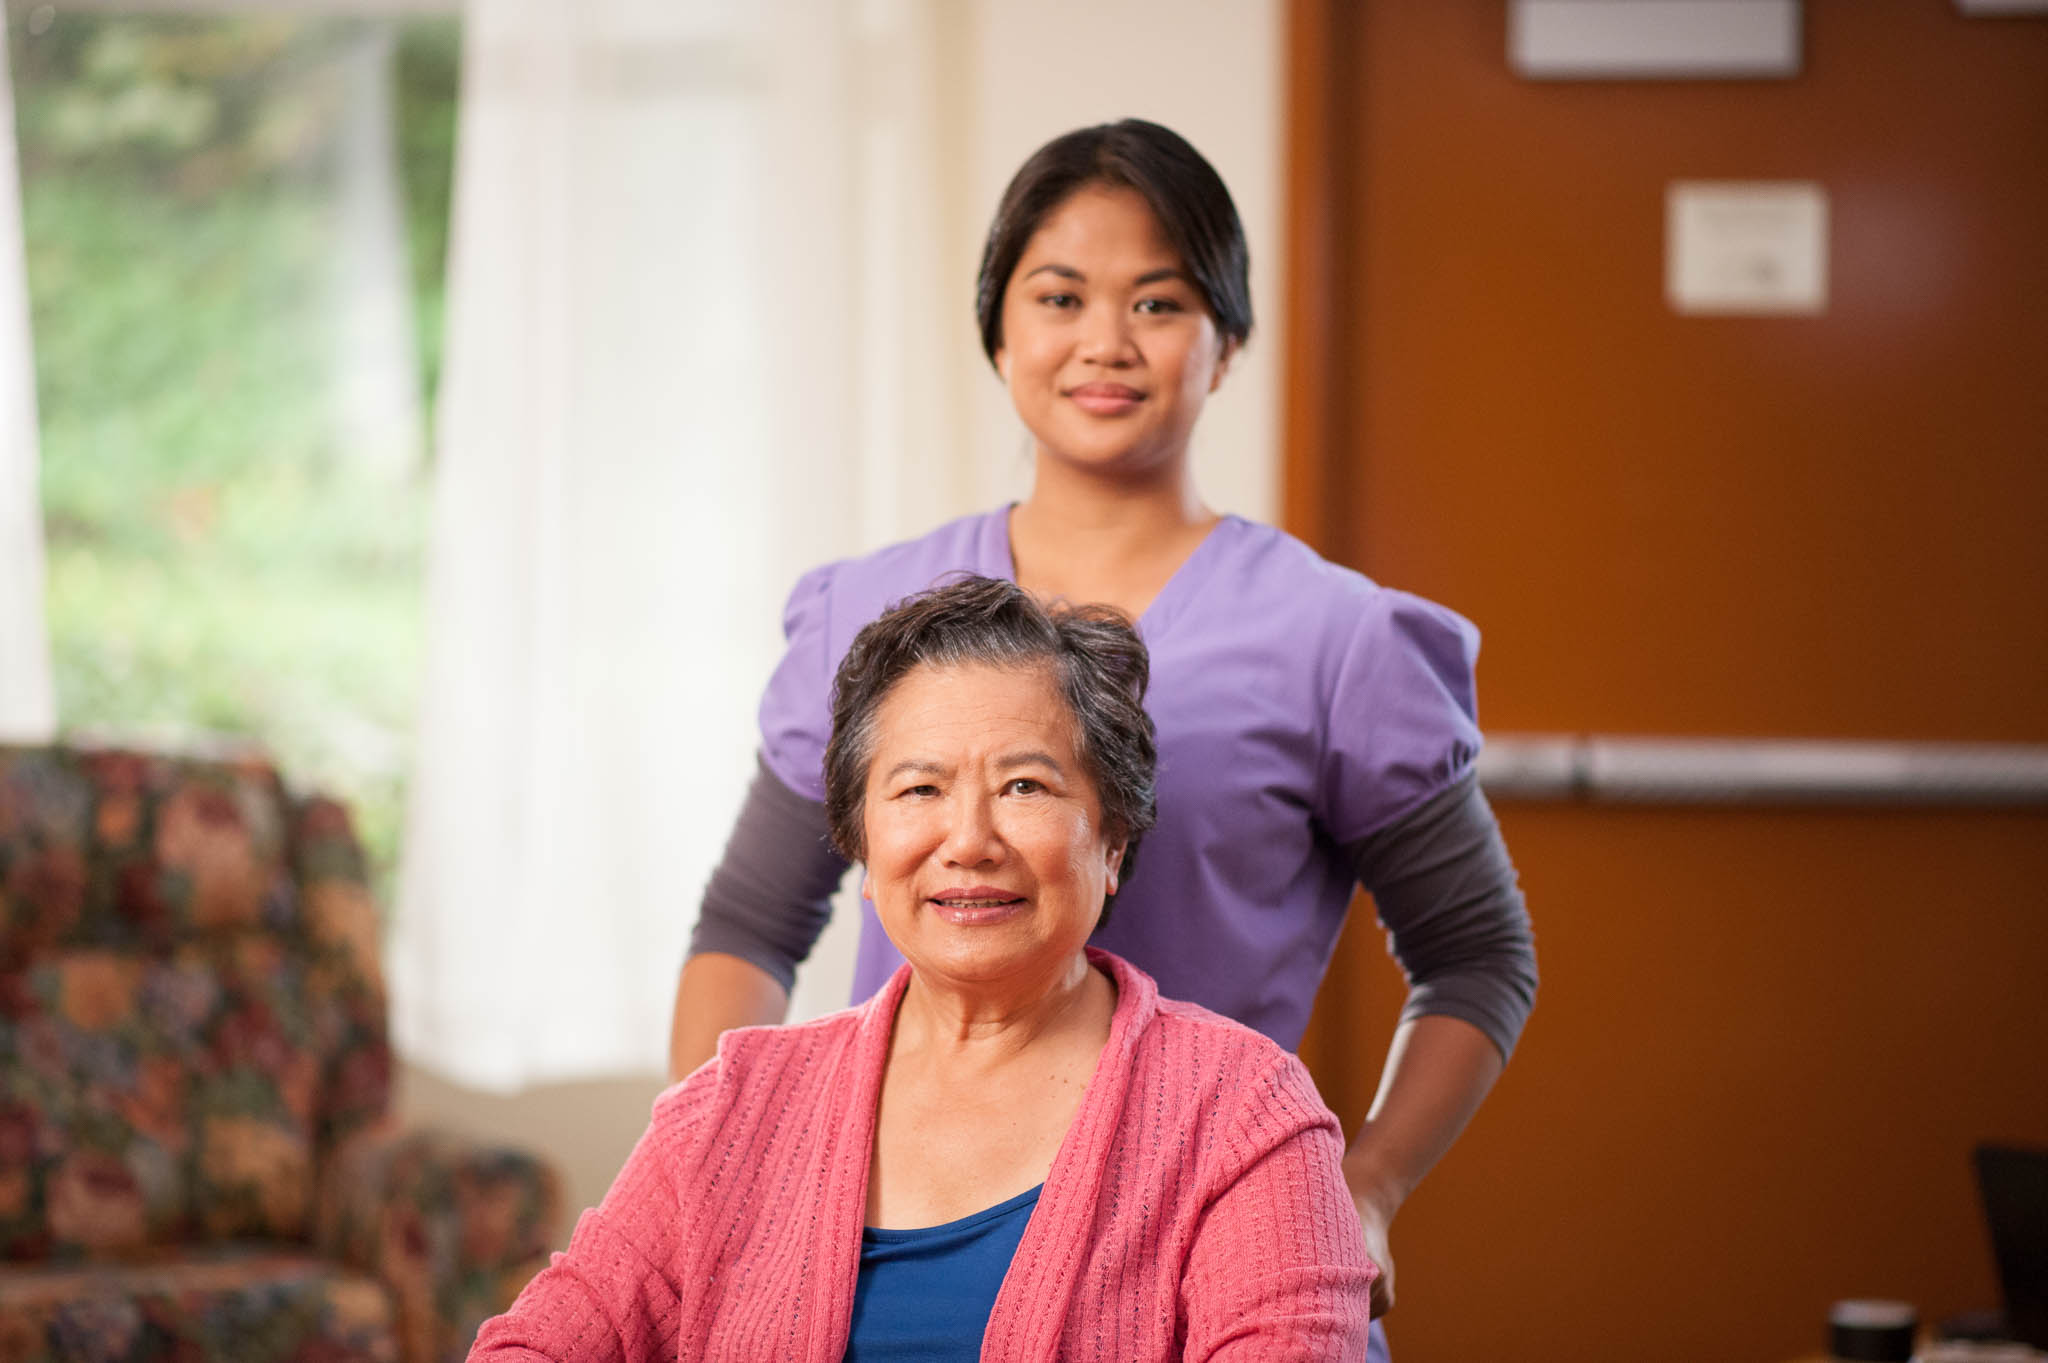 care aide with senior